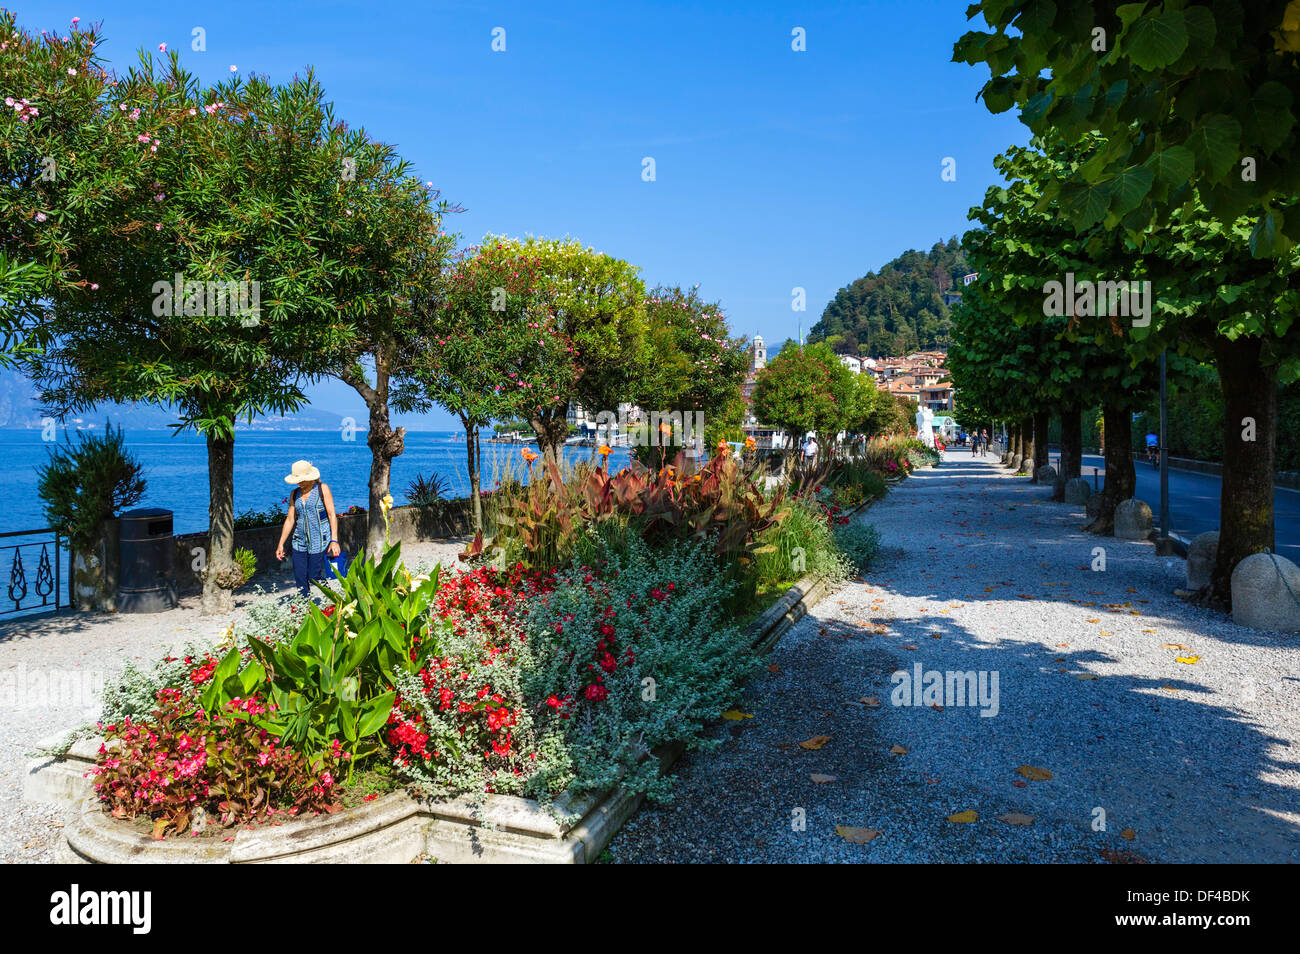 The lakefront promenade in Bellagio, Lake Como, Lombardy, Italy - Stock Image